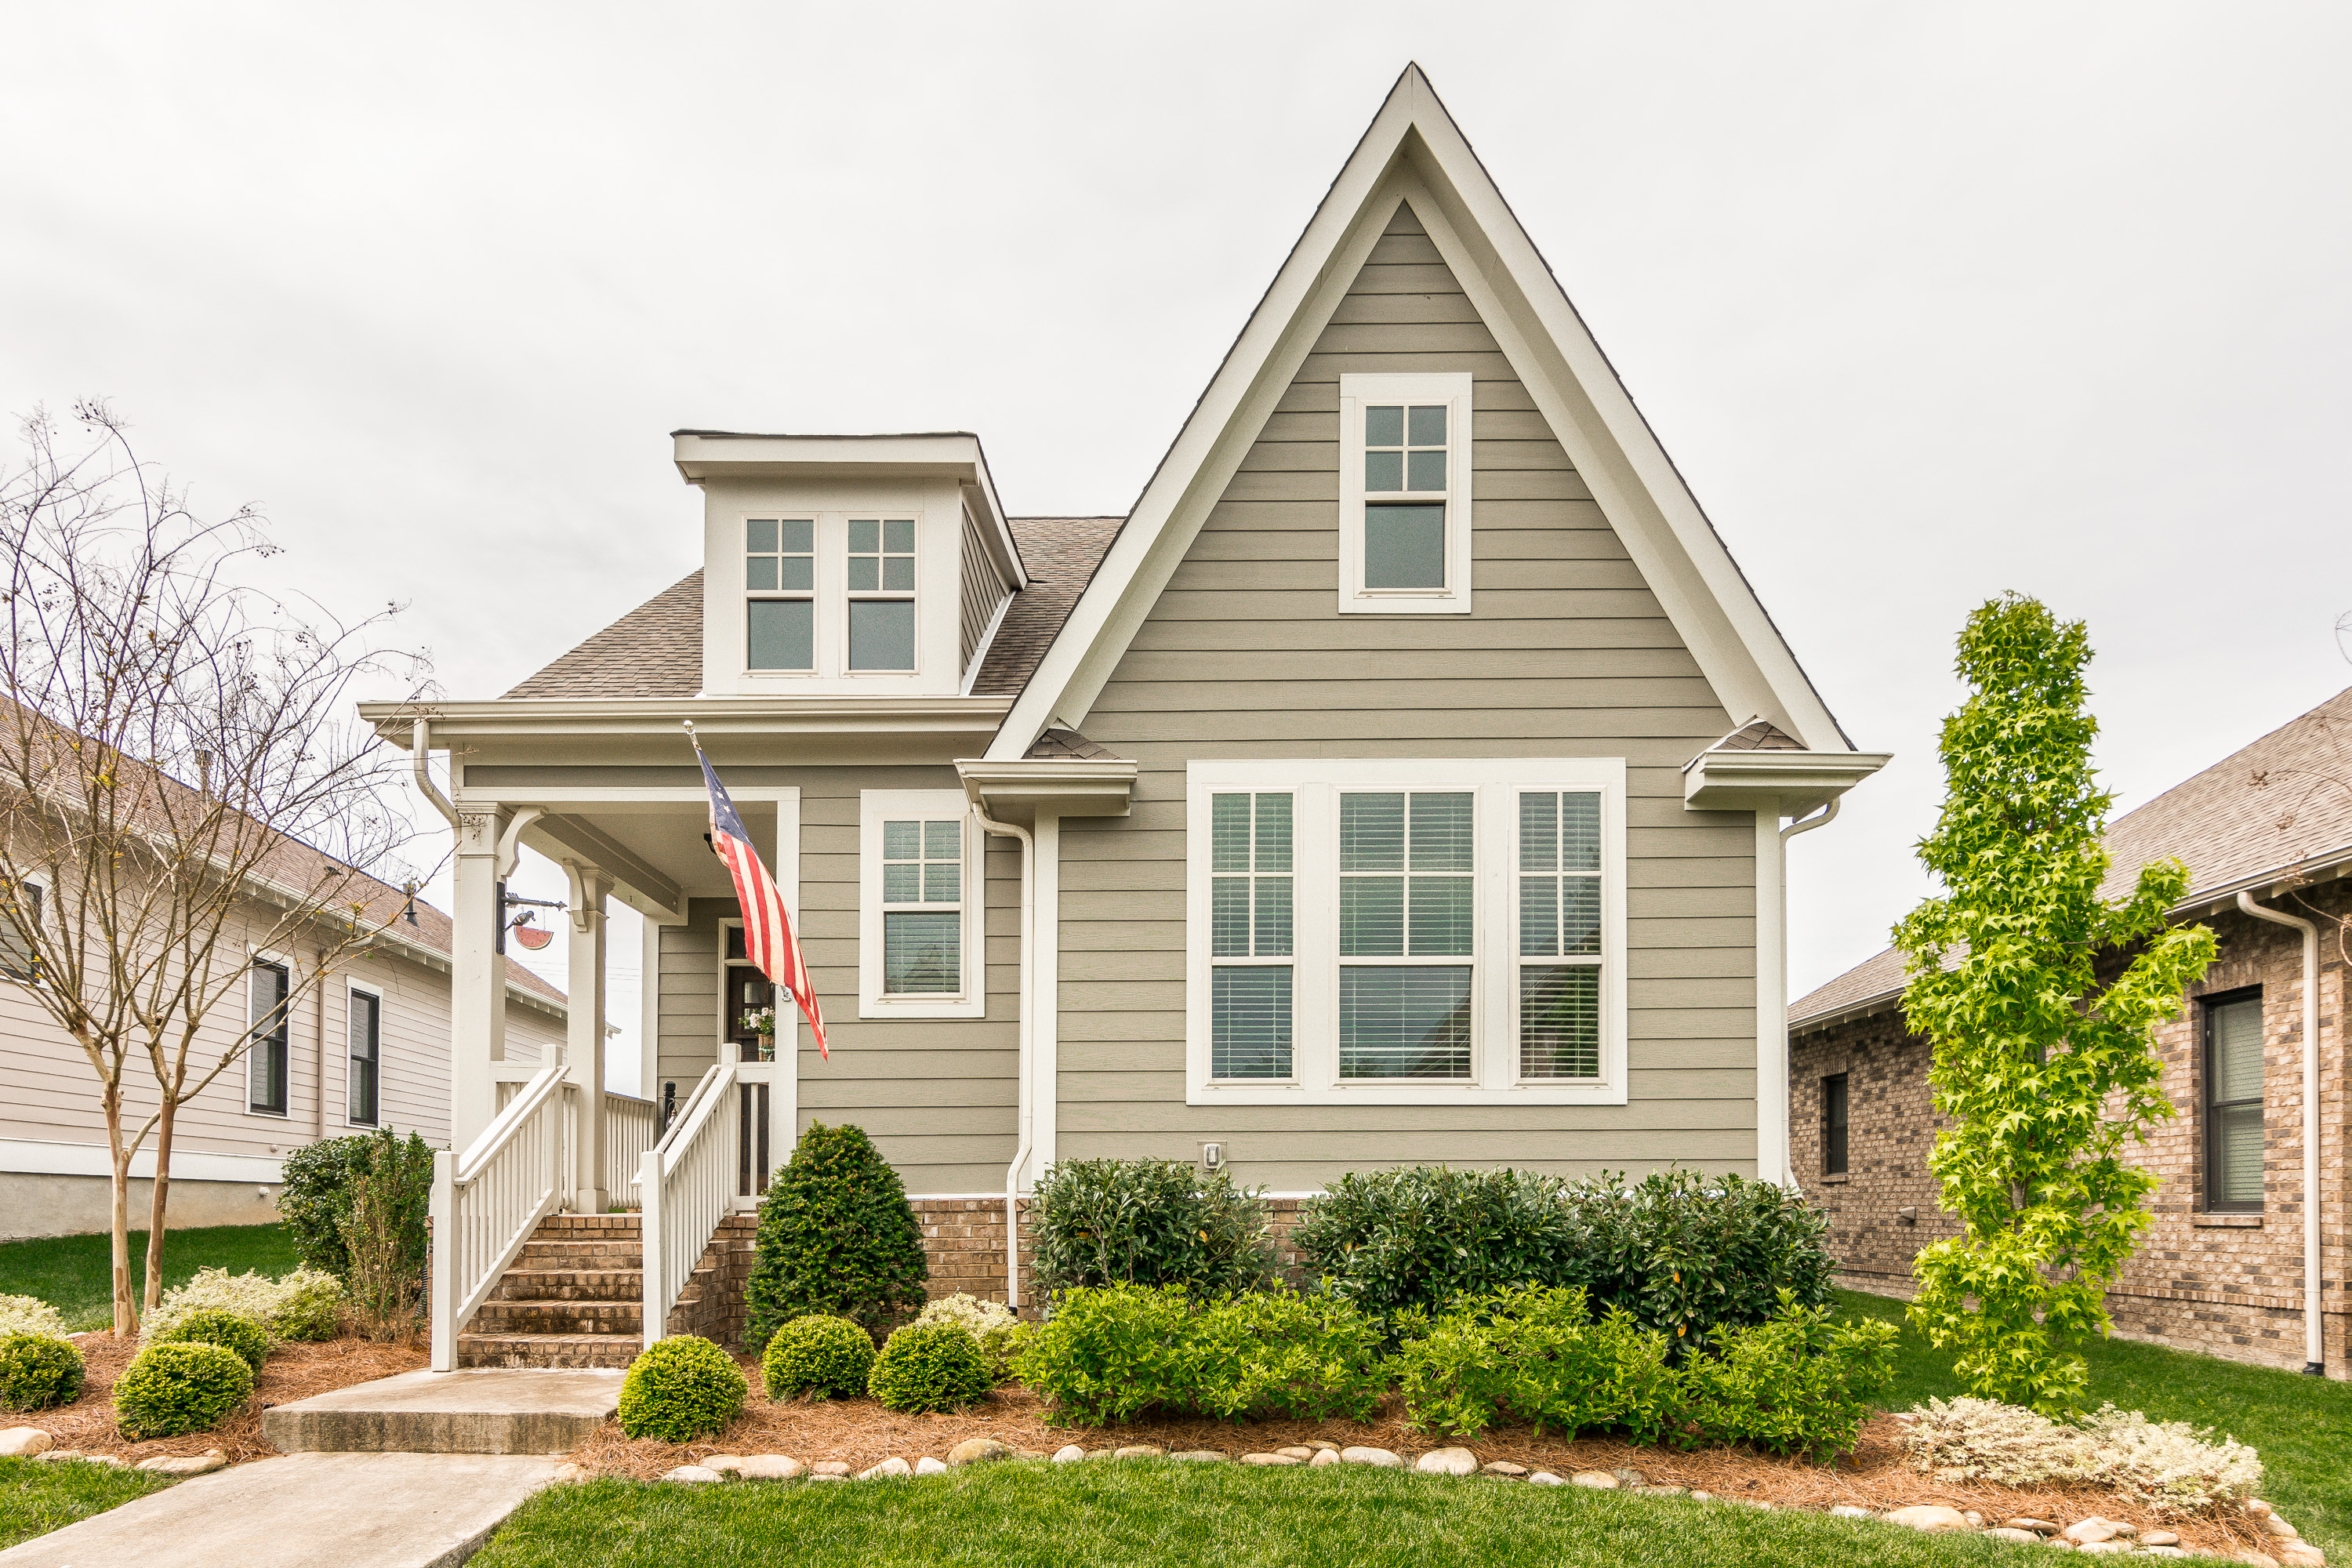 Latest homes for sale in Harbor Town